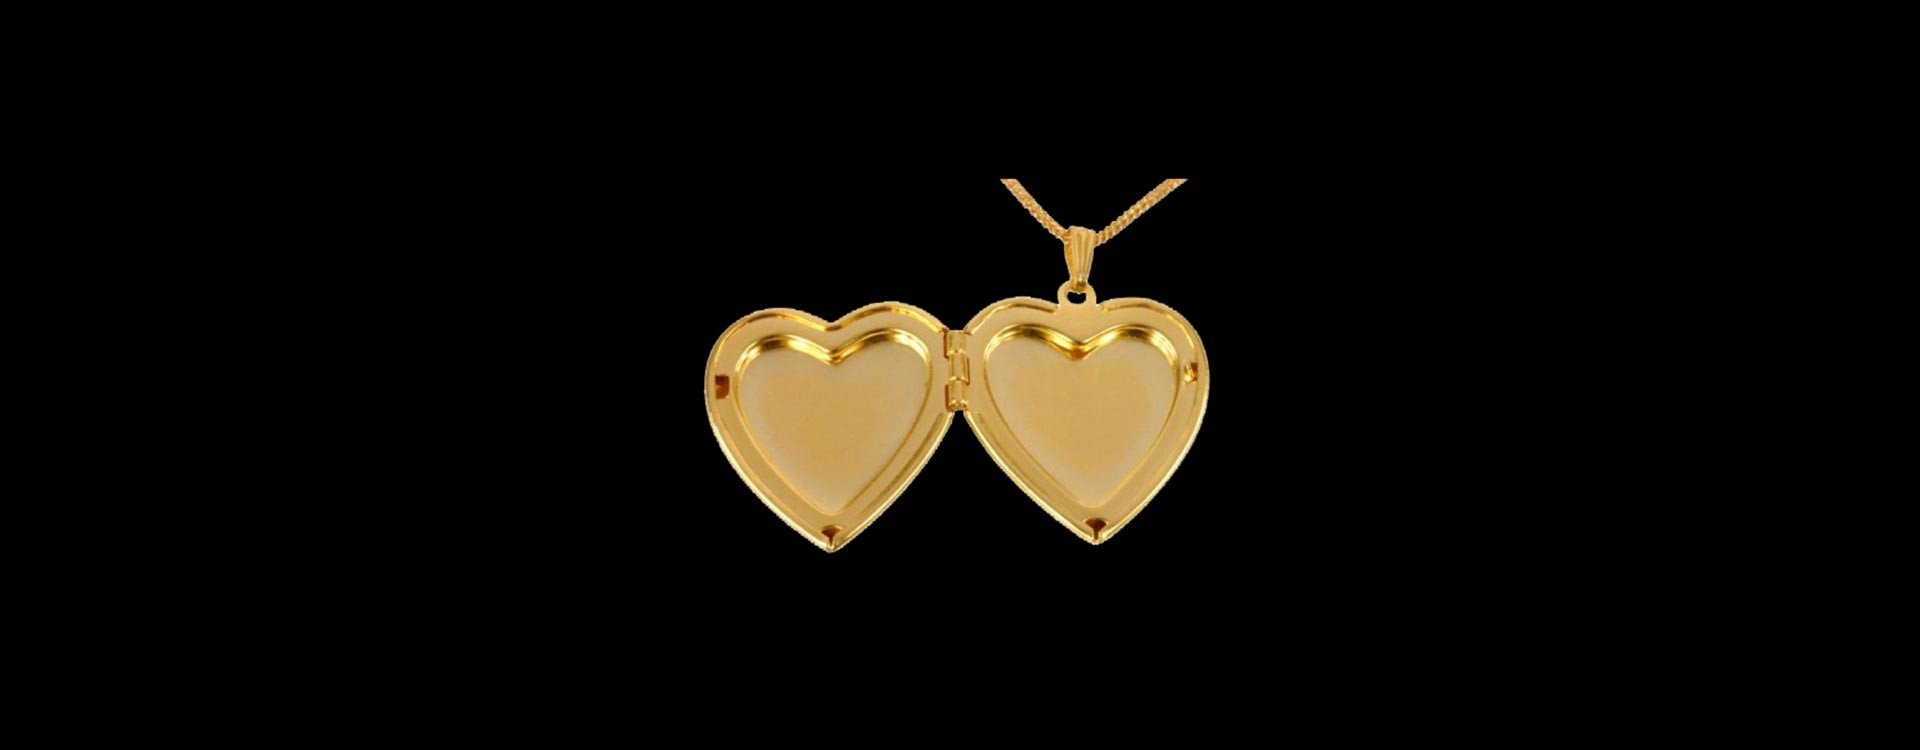 Golden Opened Heart Pendant